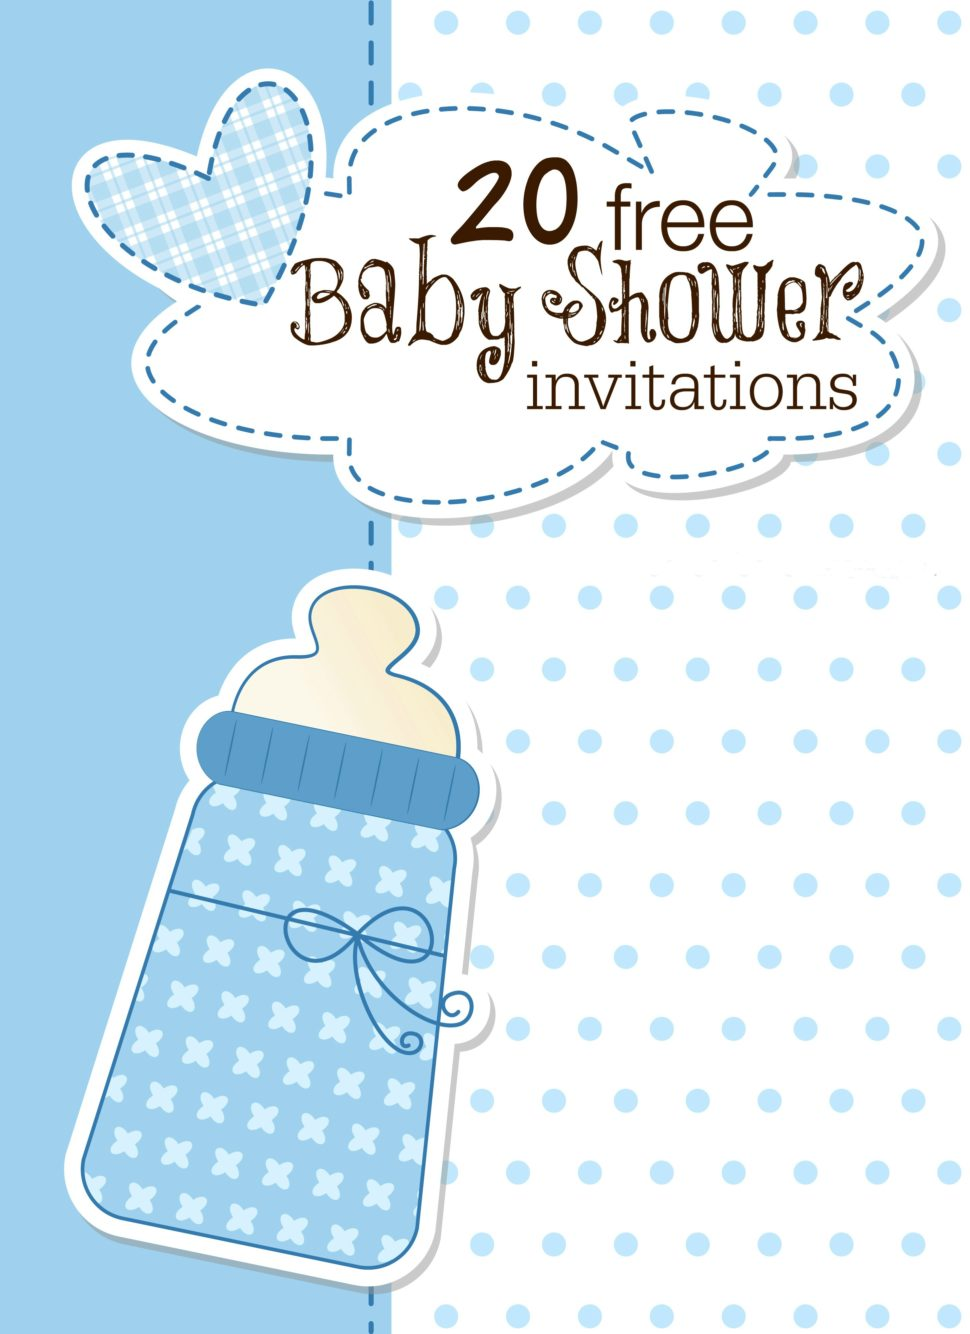 Medium Size of Baby Shower:baby Shower Invitations For Boys Homemade Baby Shower Decorations Baby Shower Ideas Nursery Themes For Girls Nautical Baby Shower Invitations For Boys Baby Girl Themes For Bedroom Baby Shower Ideas Baby Shower Decorations Themes For Baby Girl Nursery